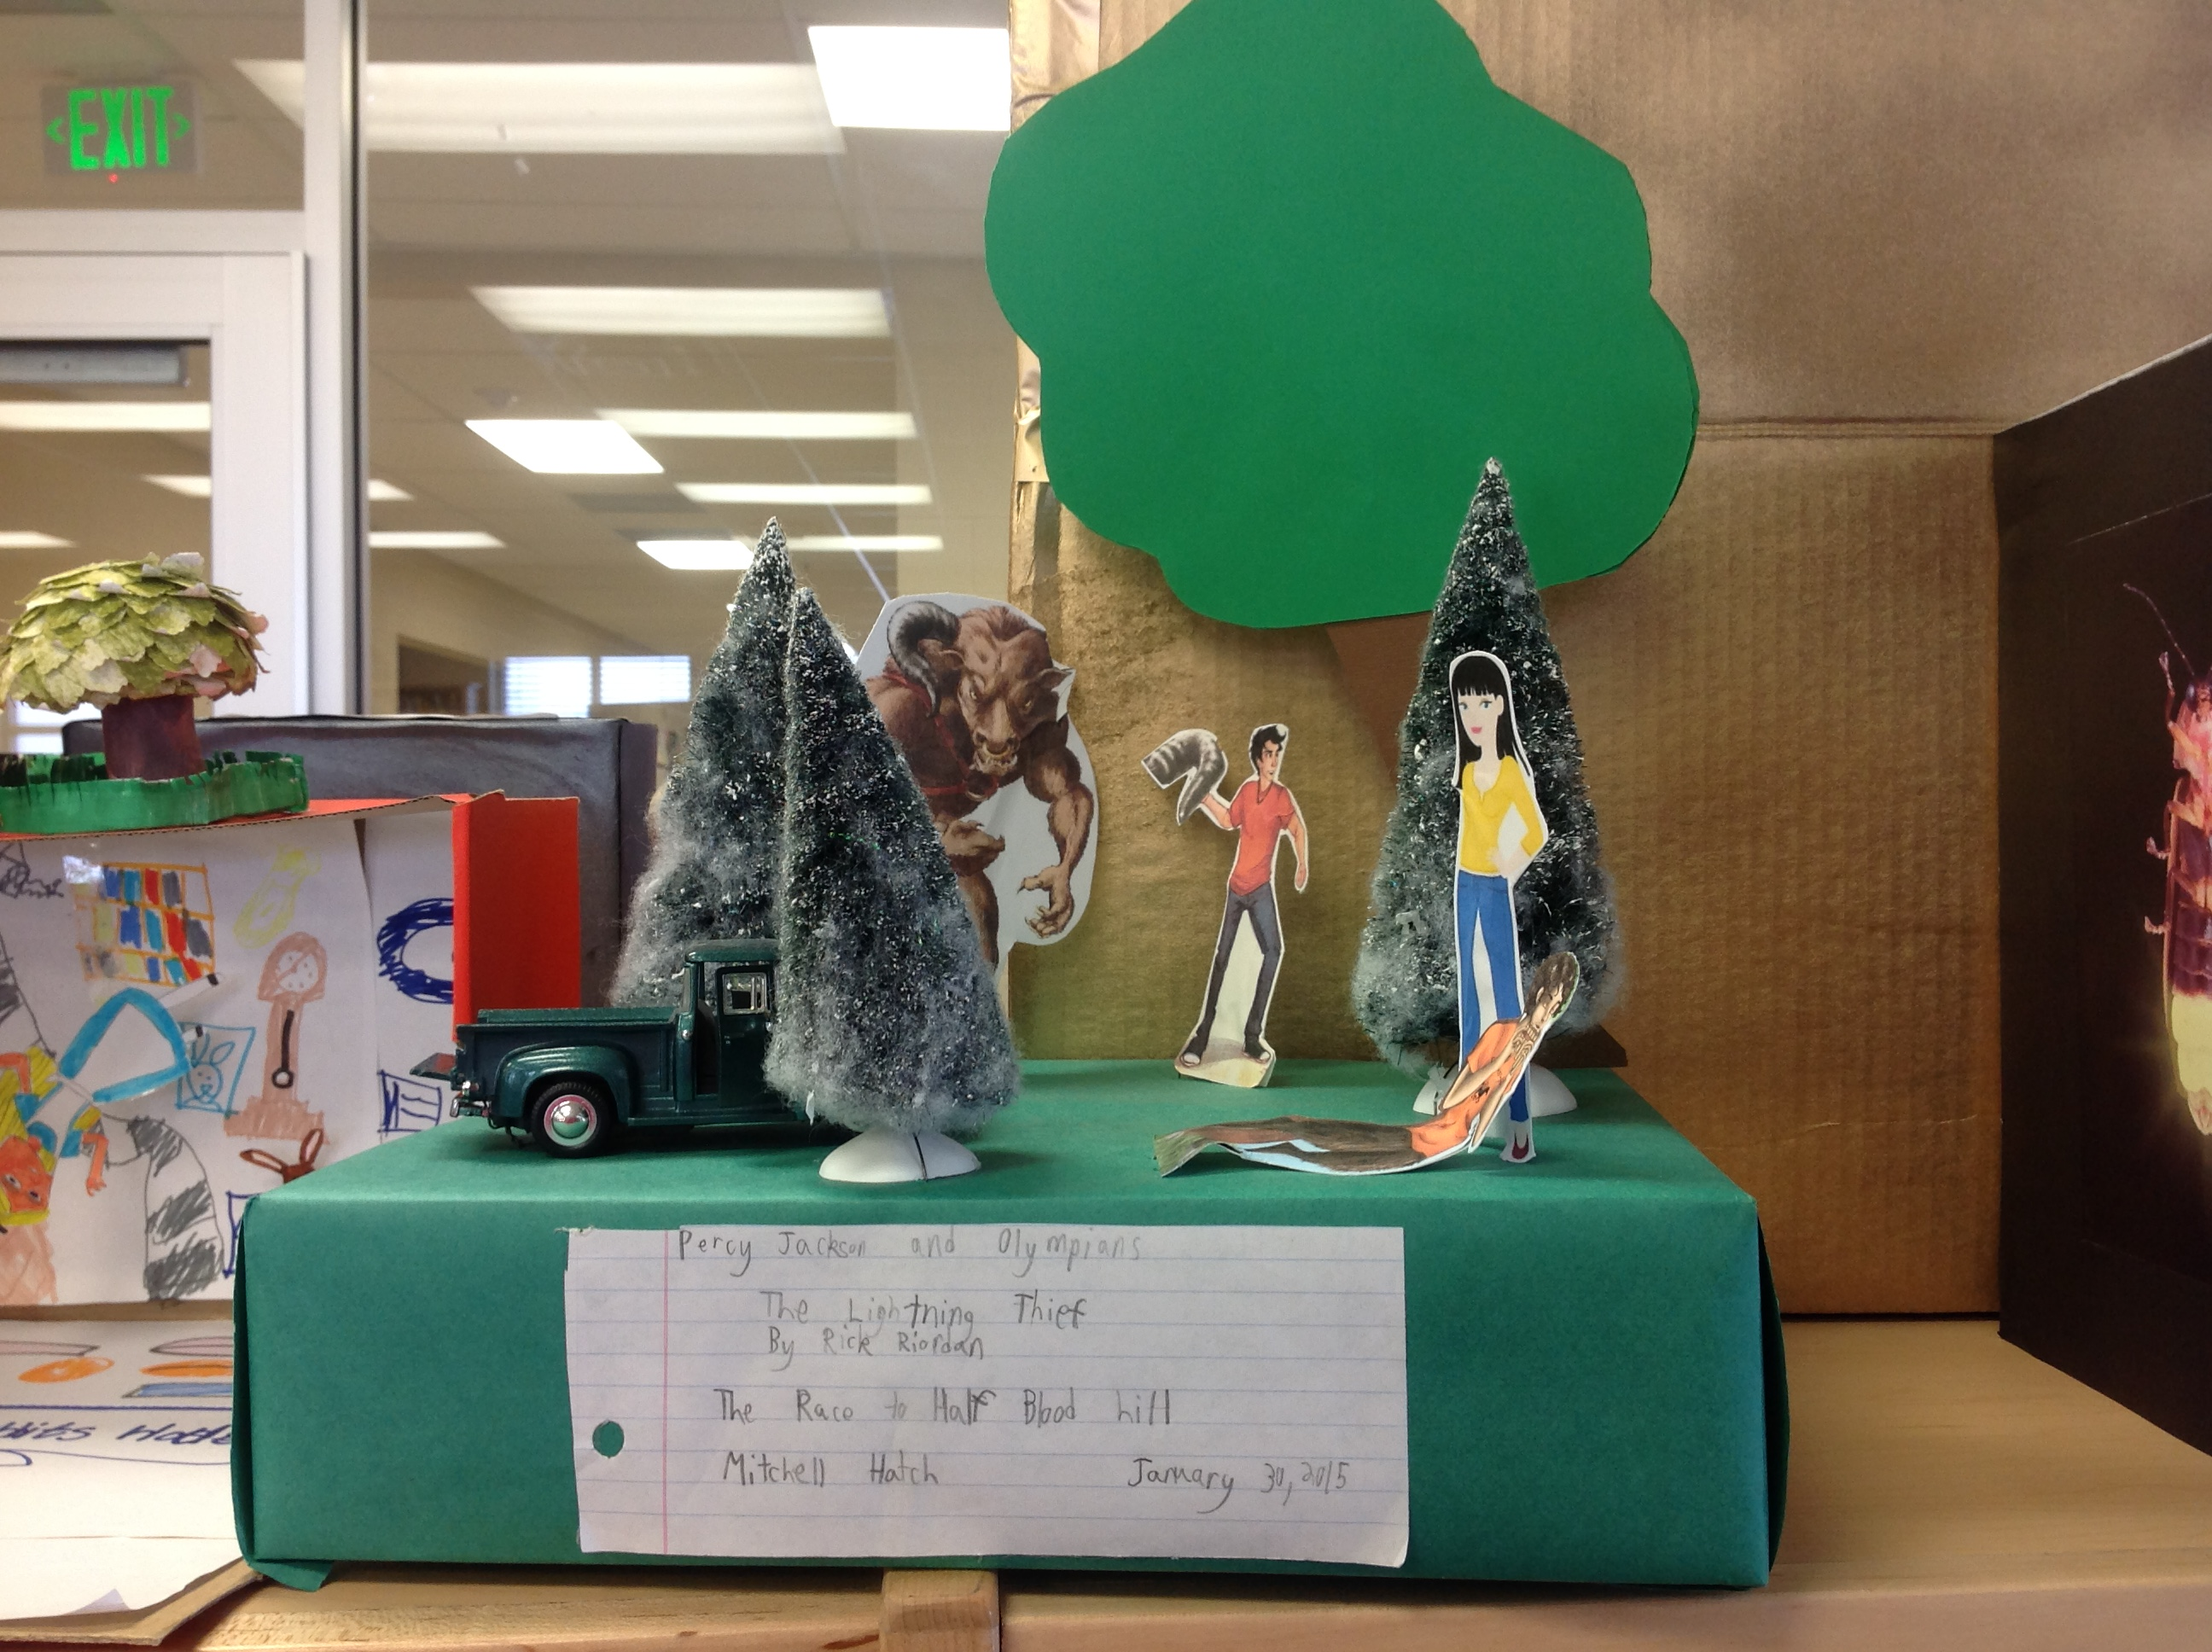 4th grade book report diorama Find this pin and more on diorama book reports by scout1967 my son cameron and i made this jungle diorama for his 4 th grade book report.